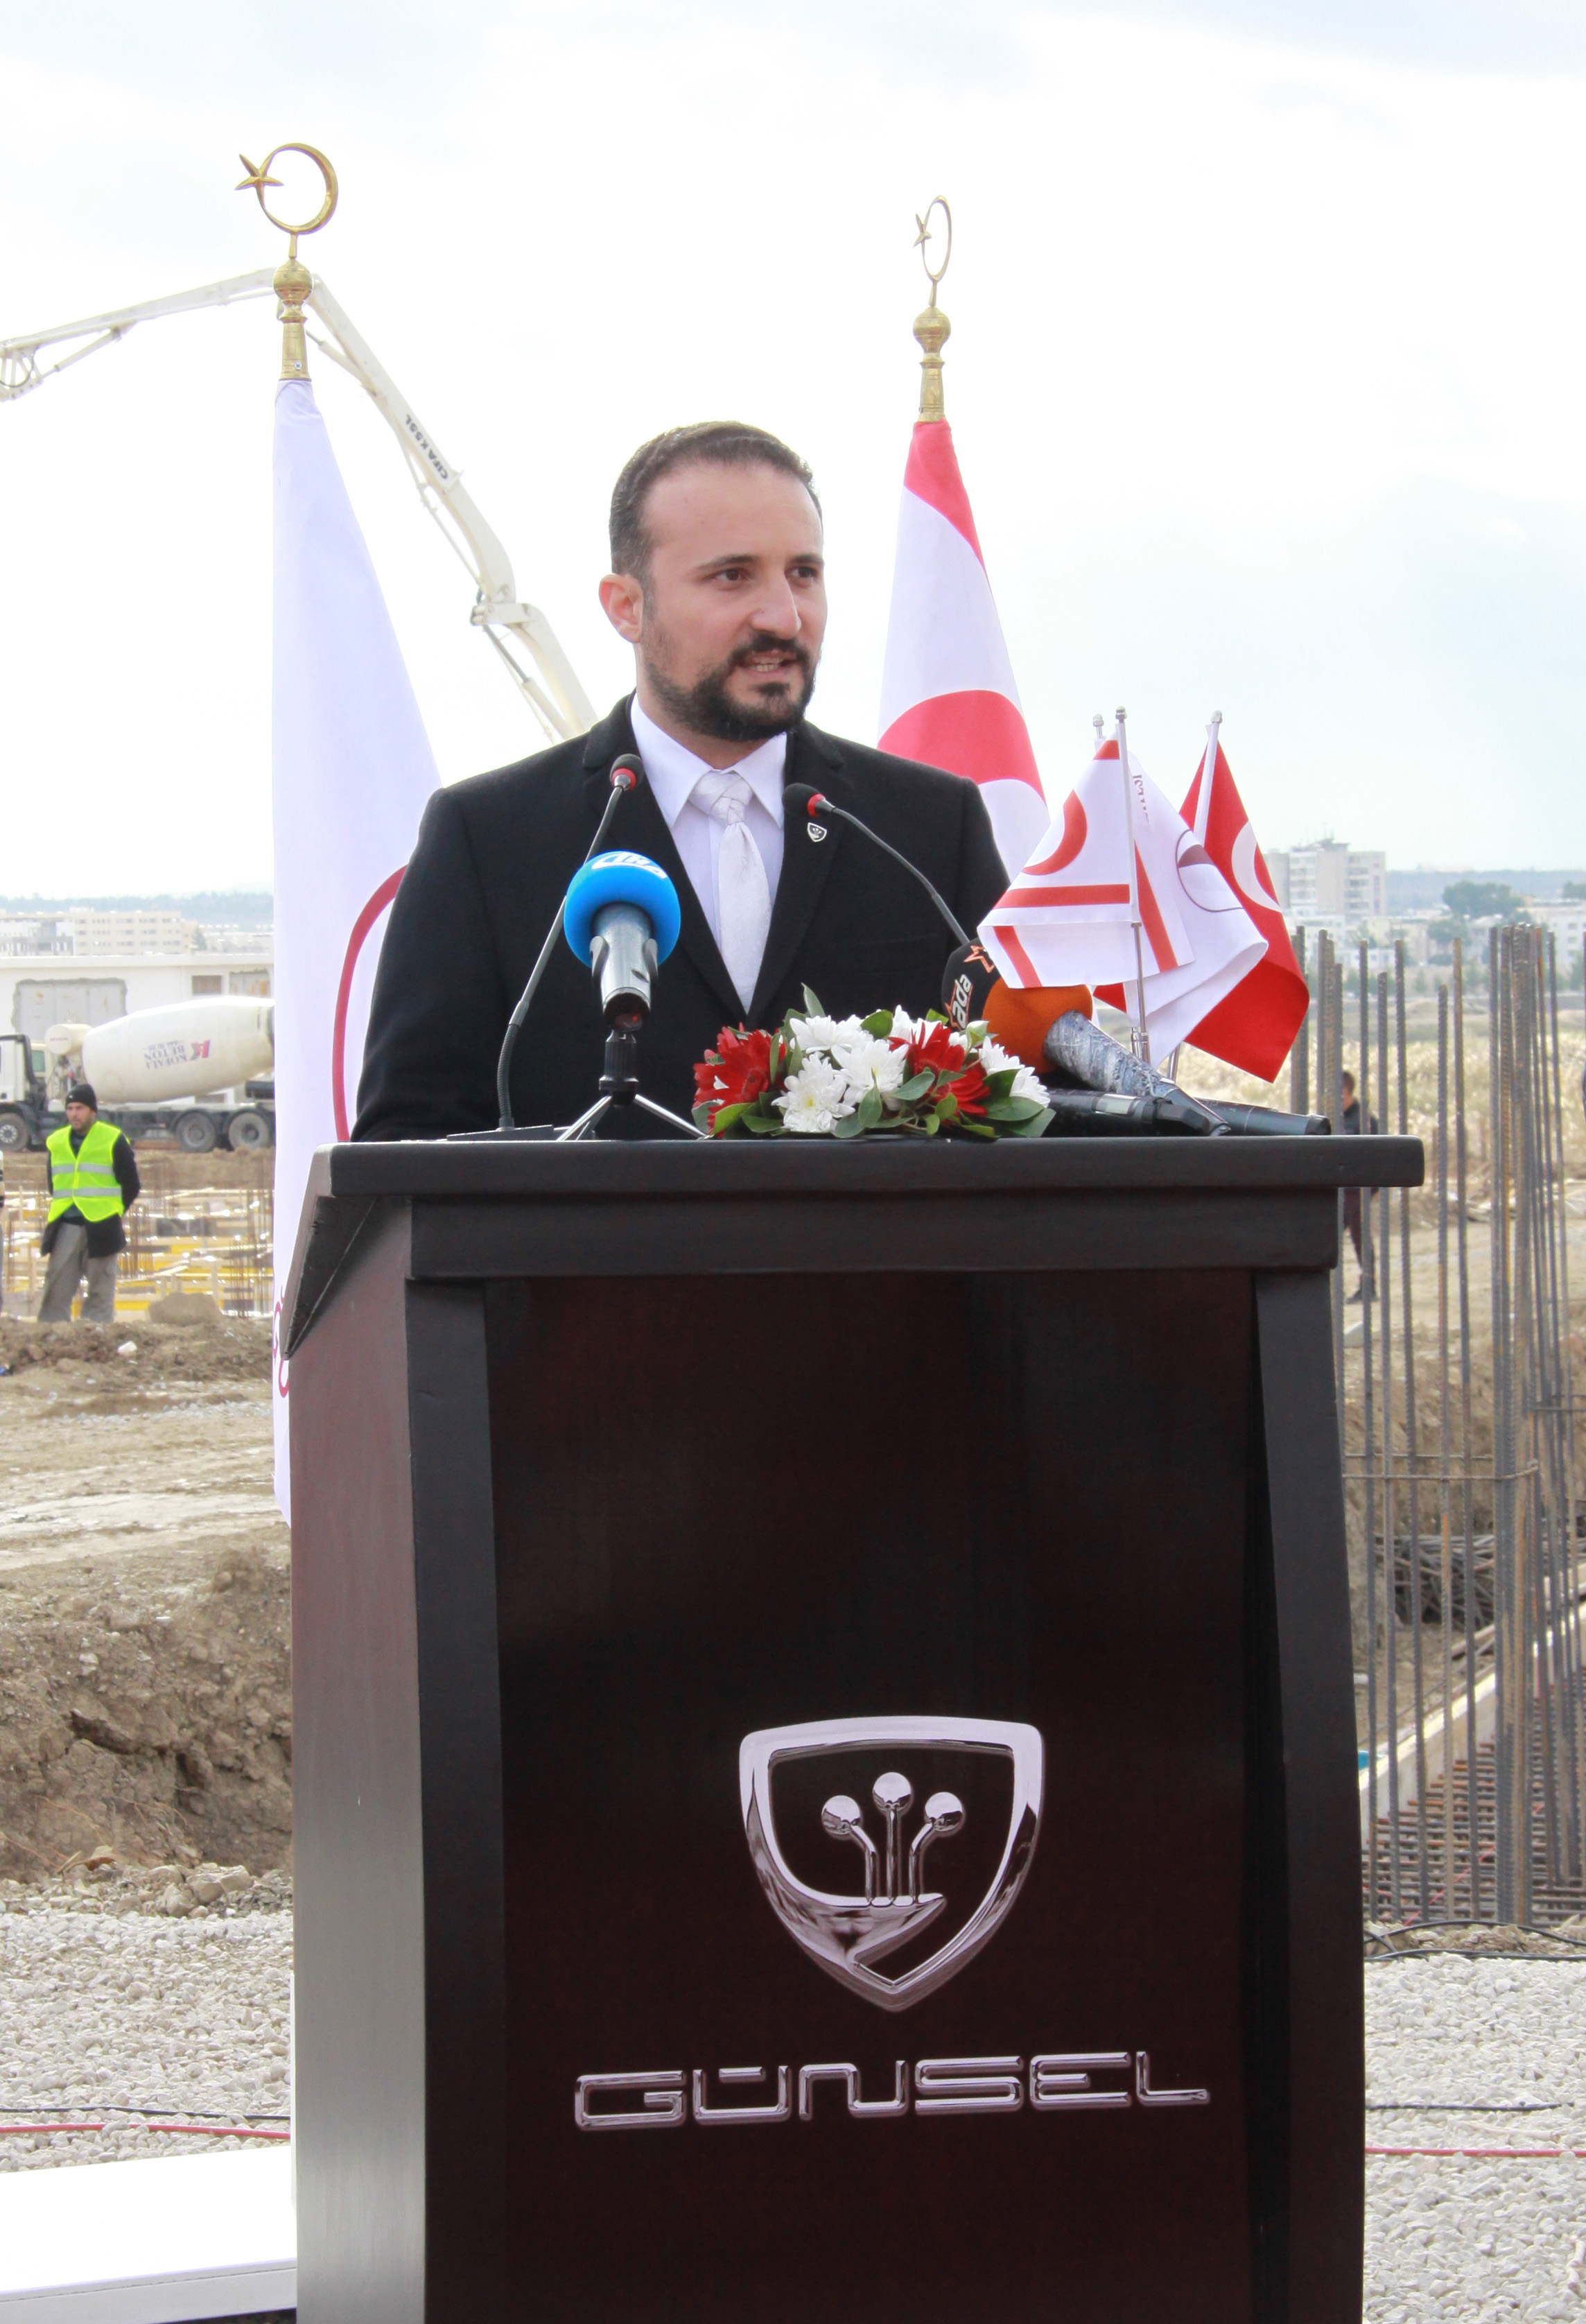 TRNC's Pride Day…. The foundations of the manufacturing facilities to produce GÜNSEL, our country's first domestic automobile, were laid